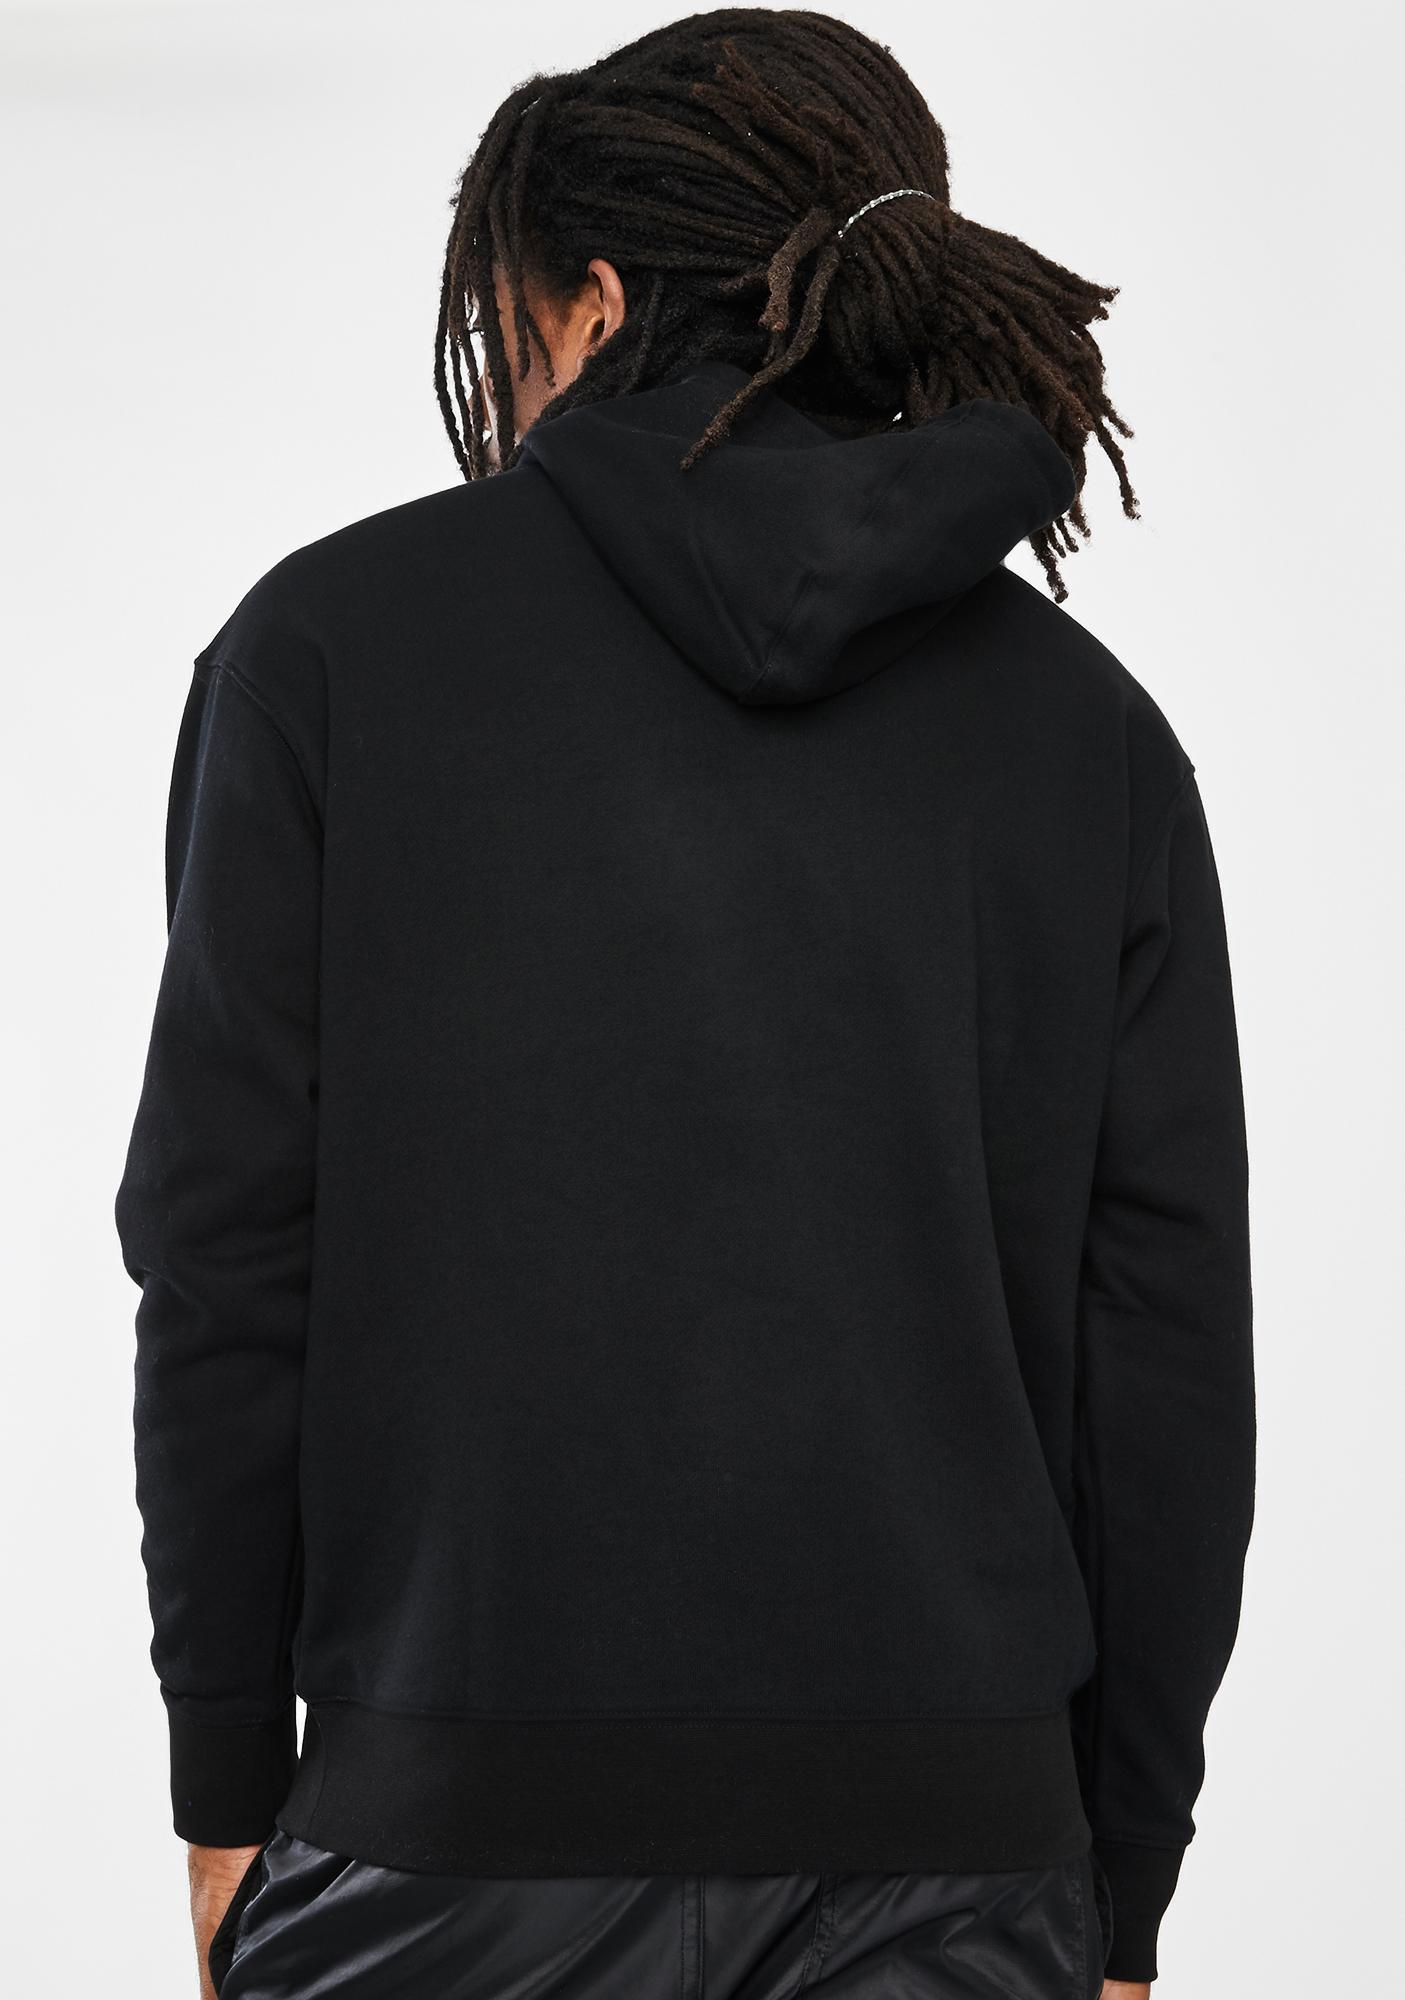 Renowned LA Cards Dealt Graphic Hoodie